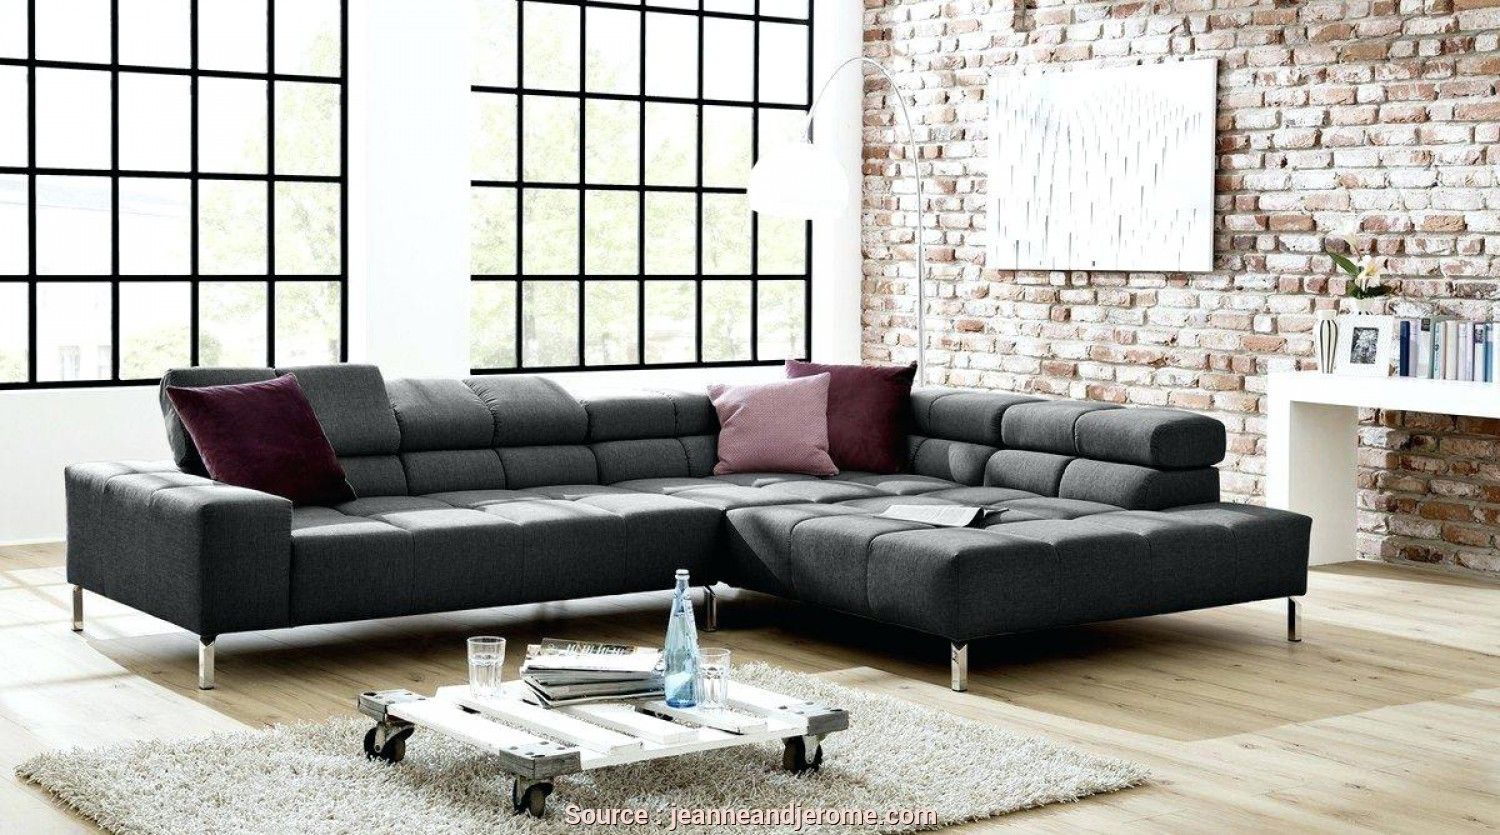 Ikea Couch Stoffe, Eccezionale Gallery Of Full Size Of ...